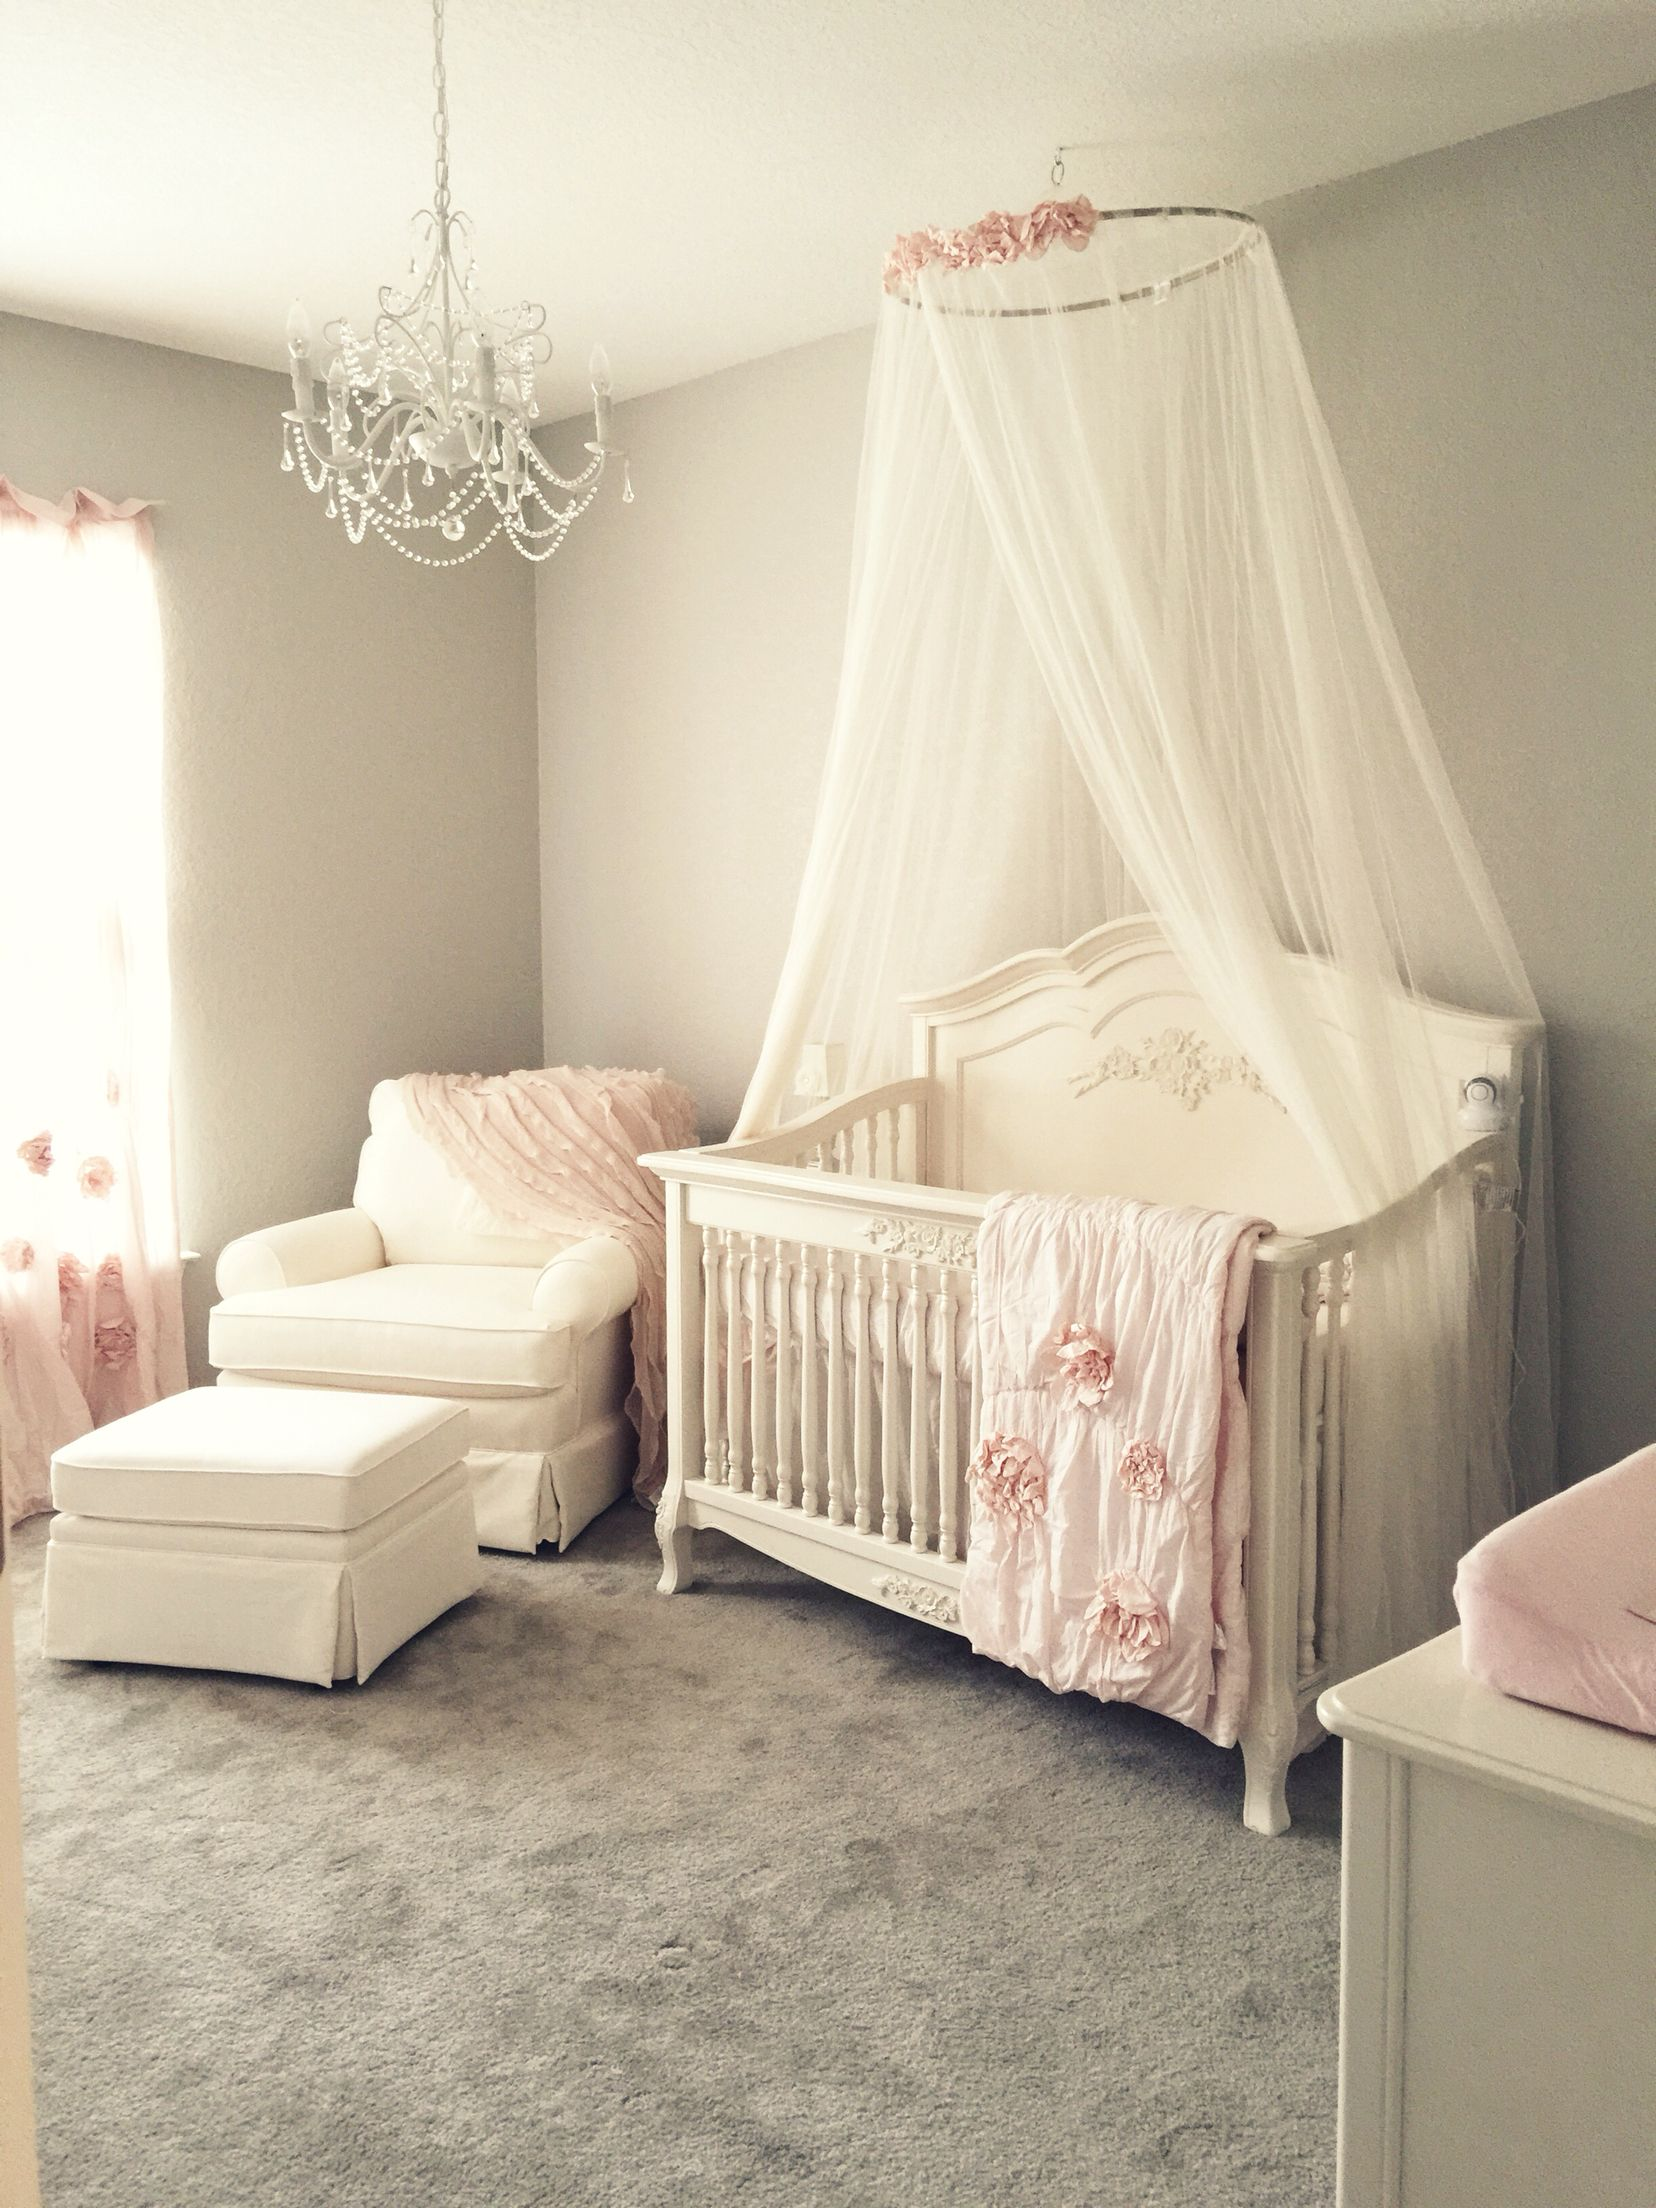 nursery wood also chandelier beside ideas orating room design pillows baby boy for and bedroom childrens girl stars nightstand antique newborn oration have white infant the small wall